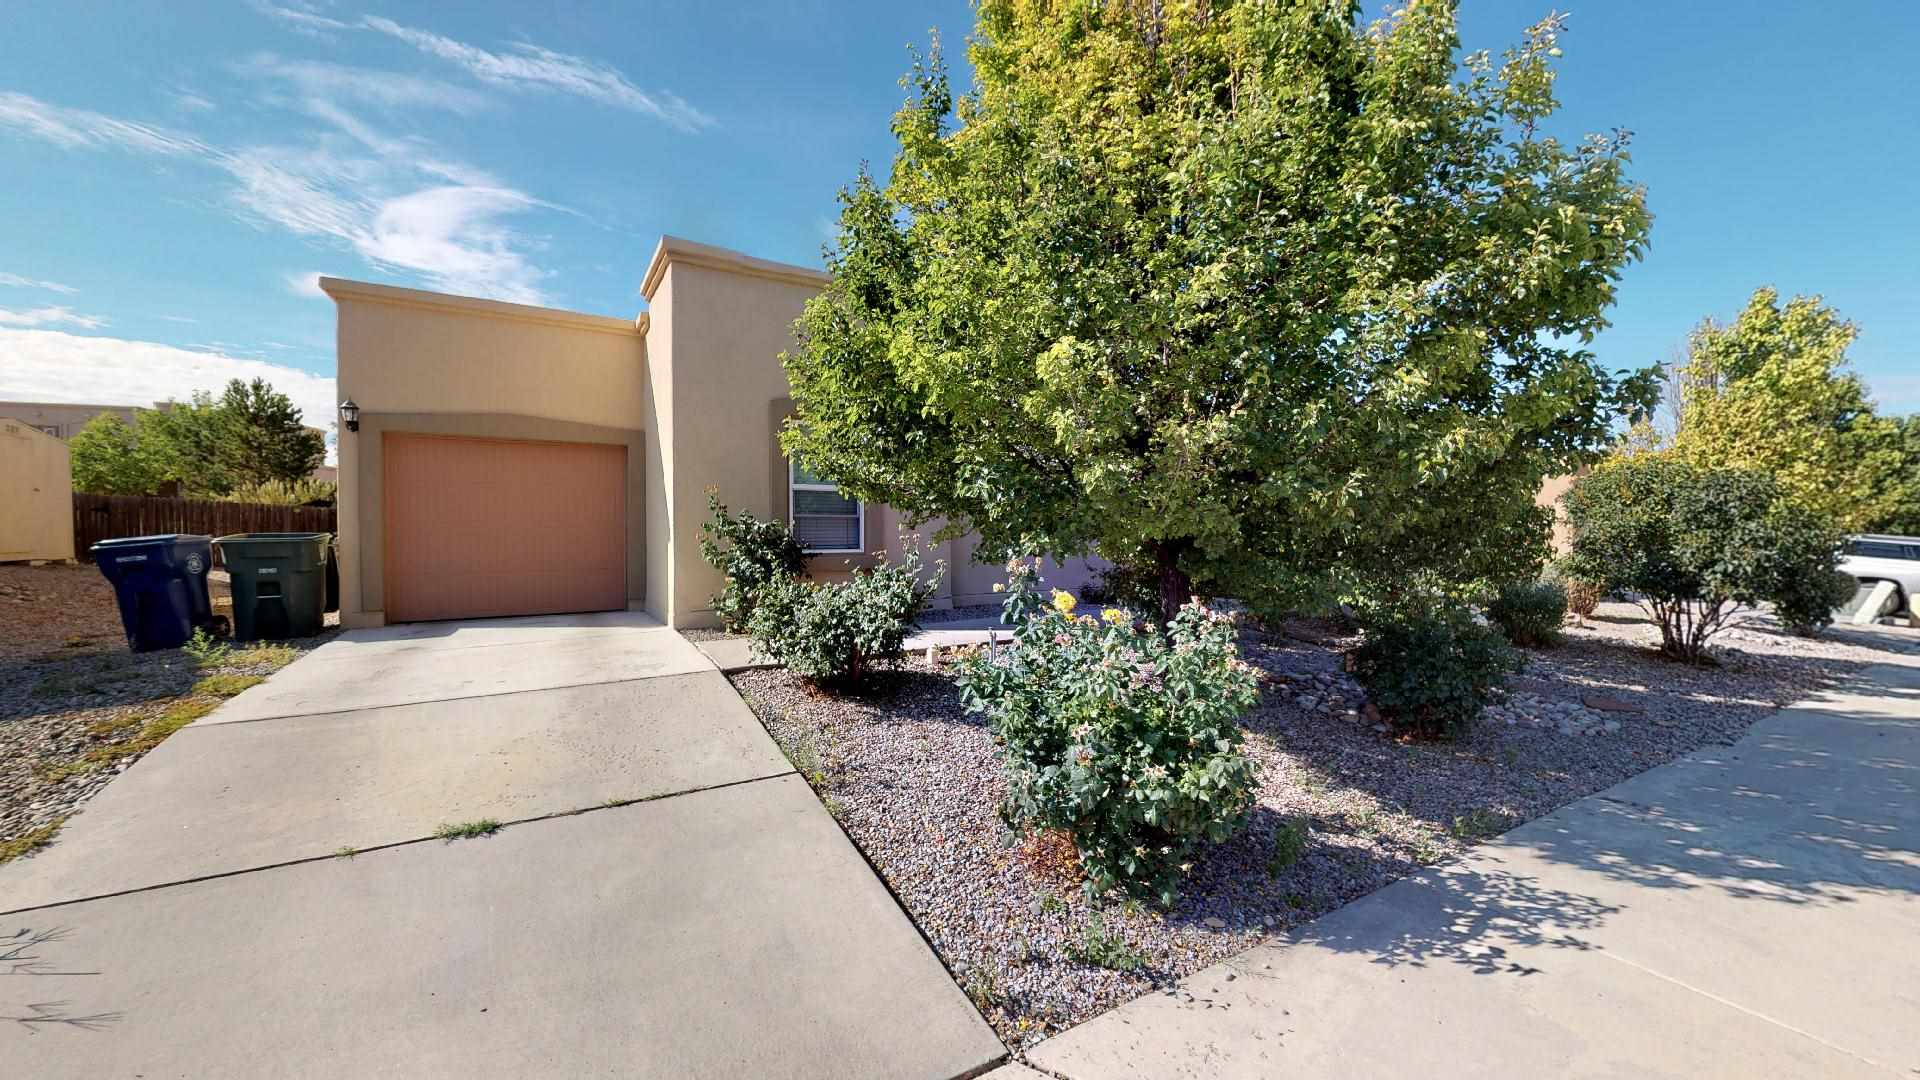 This  3 bed 2 bath home is ready for you! Great location near shopping movies and restaurants. This home has a 1 car garage, cold AC, and a nice back yard.